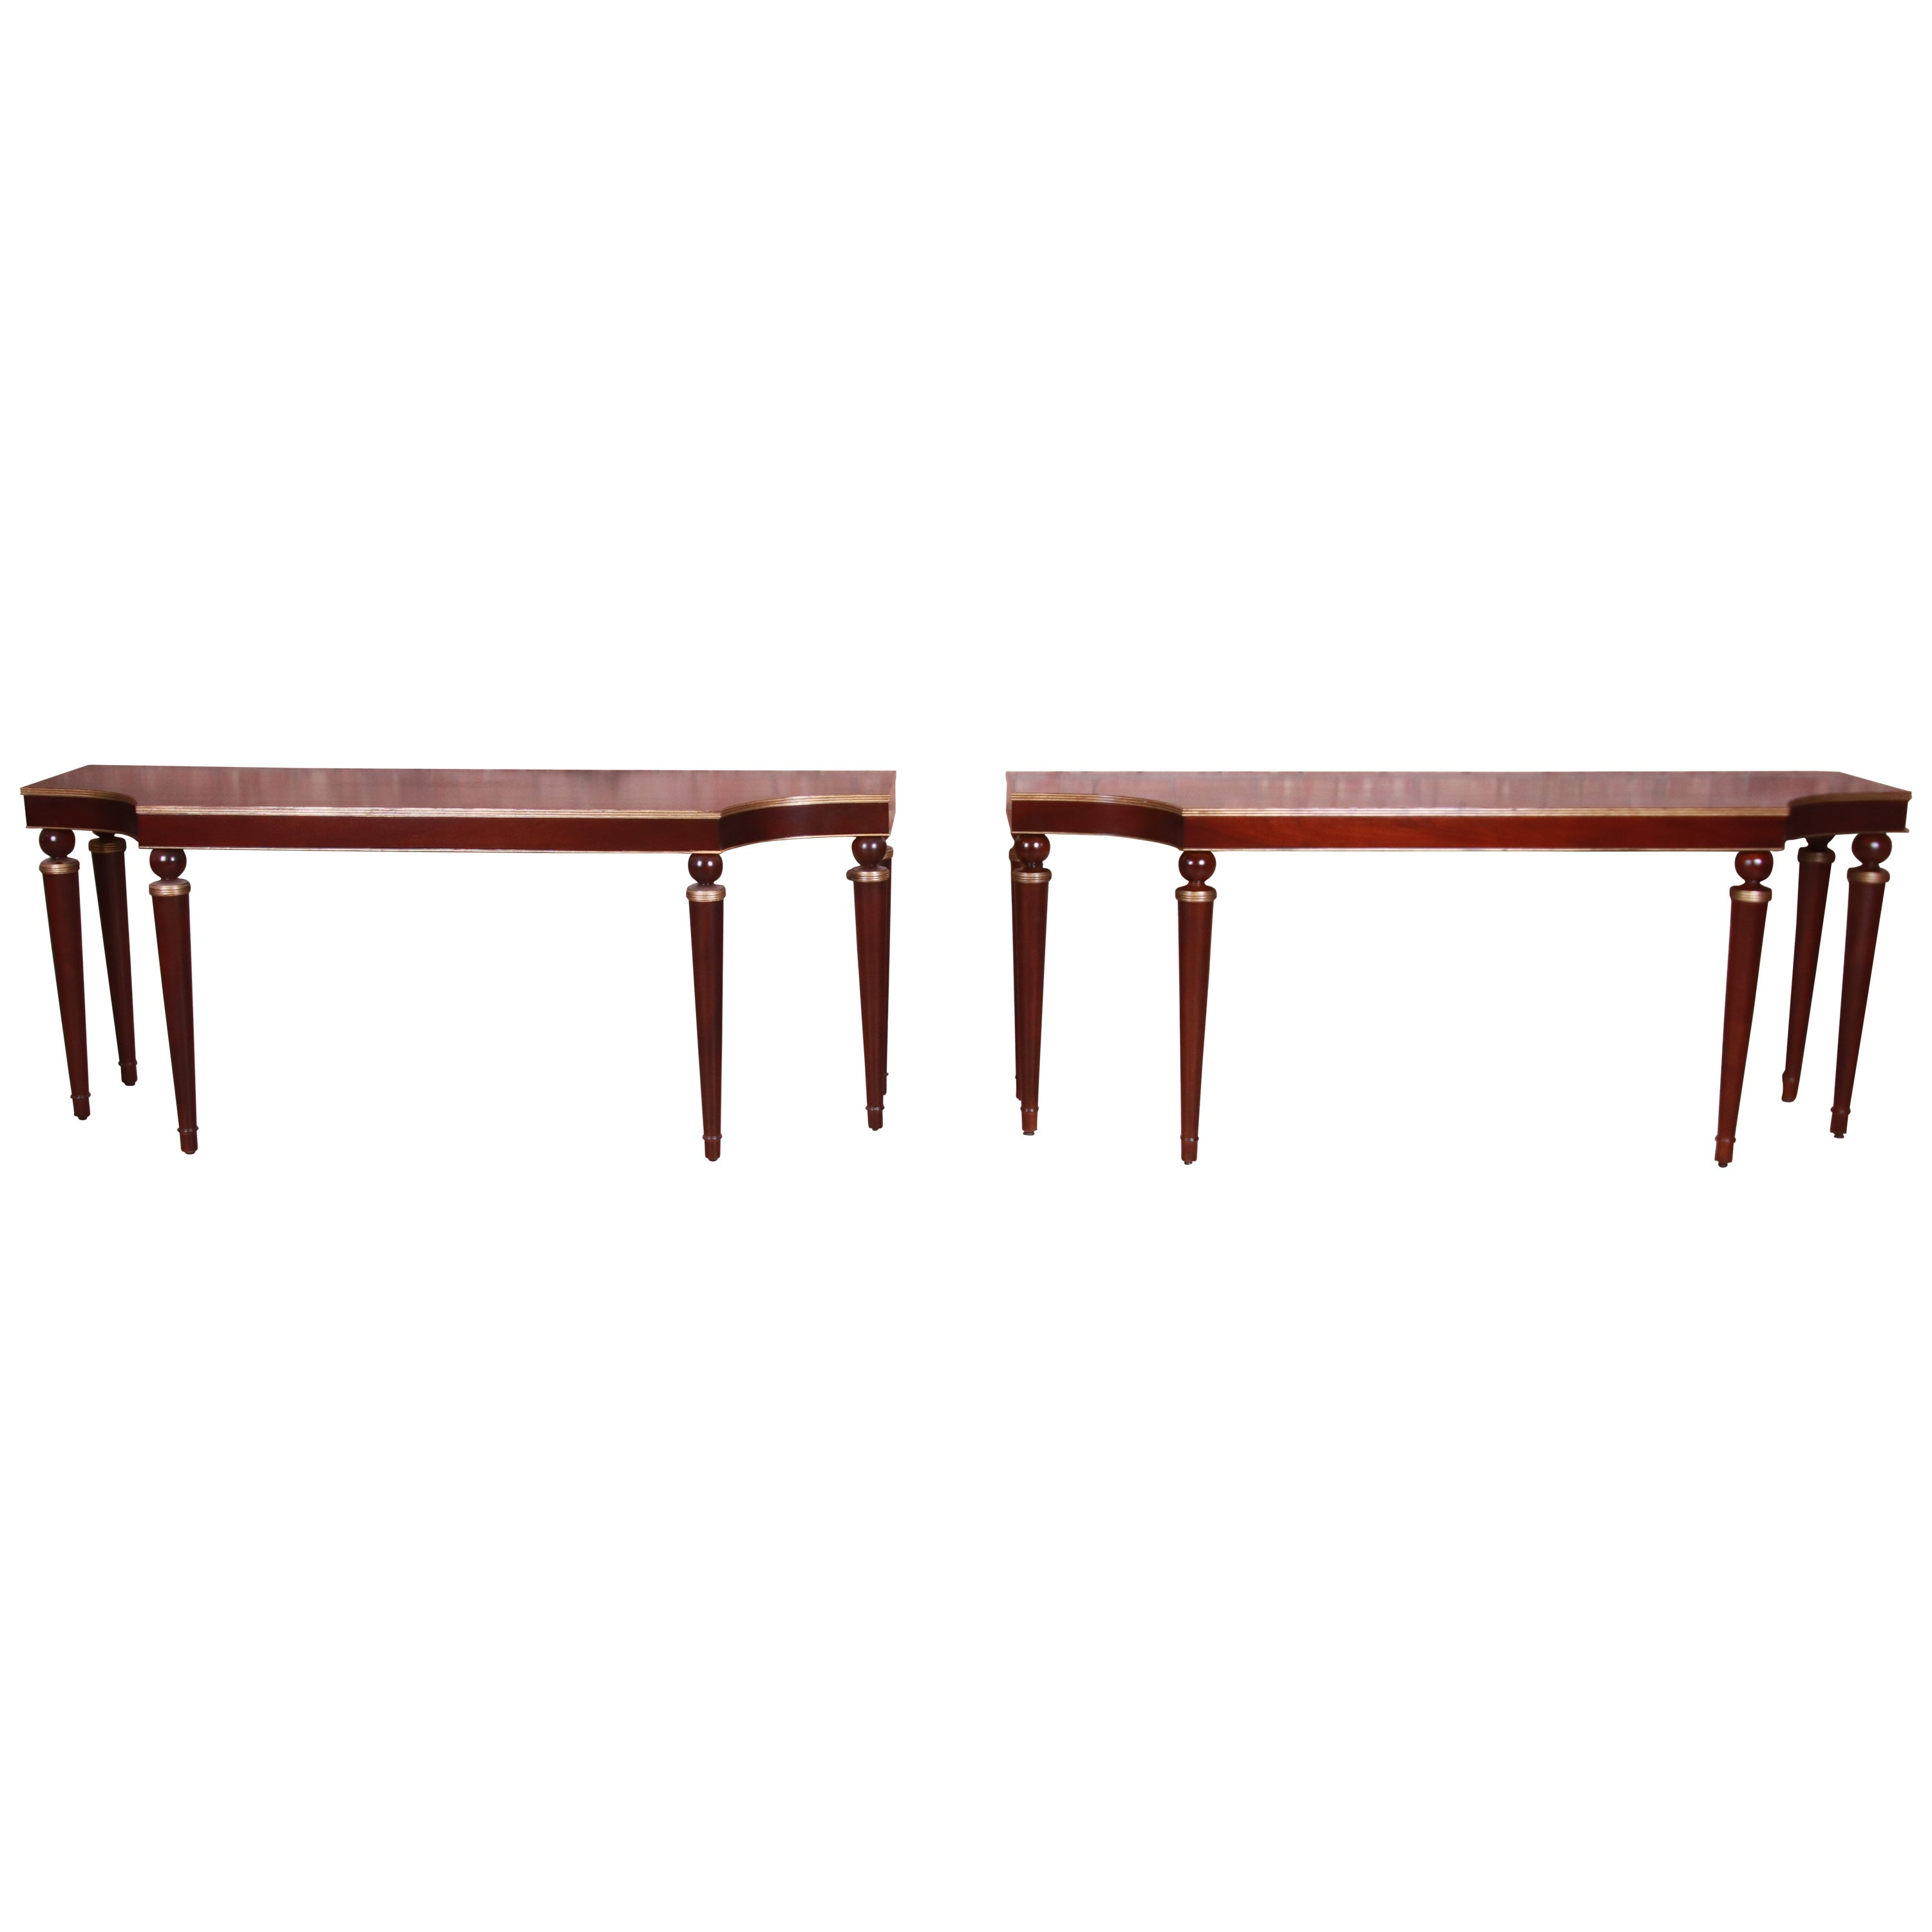 Barbara Barry for Baker Furniture Mahogany and Gold Gilt Consoles, Refinished